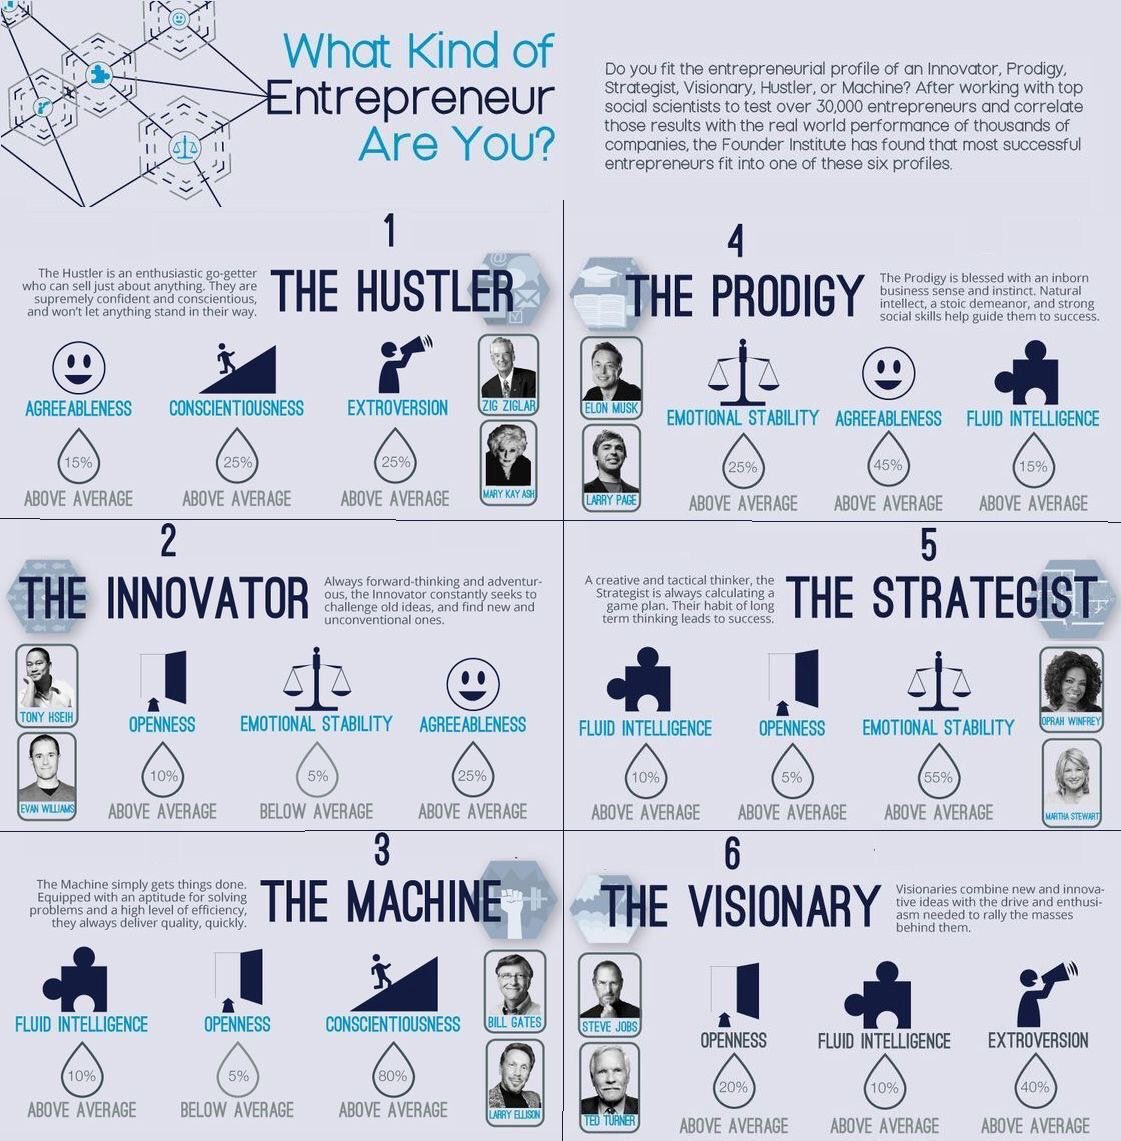 What kind of #Entrepreneur are you?  #Startup #Defstar5 #Innovation #Leadership #makeyourownlane #Mpgvip #SocialMedia #SMM #SEO #BigData #RT<br>http://pic.twitter.com/XB3t37omtN